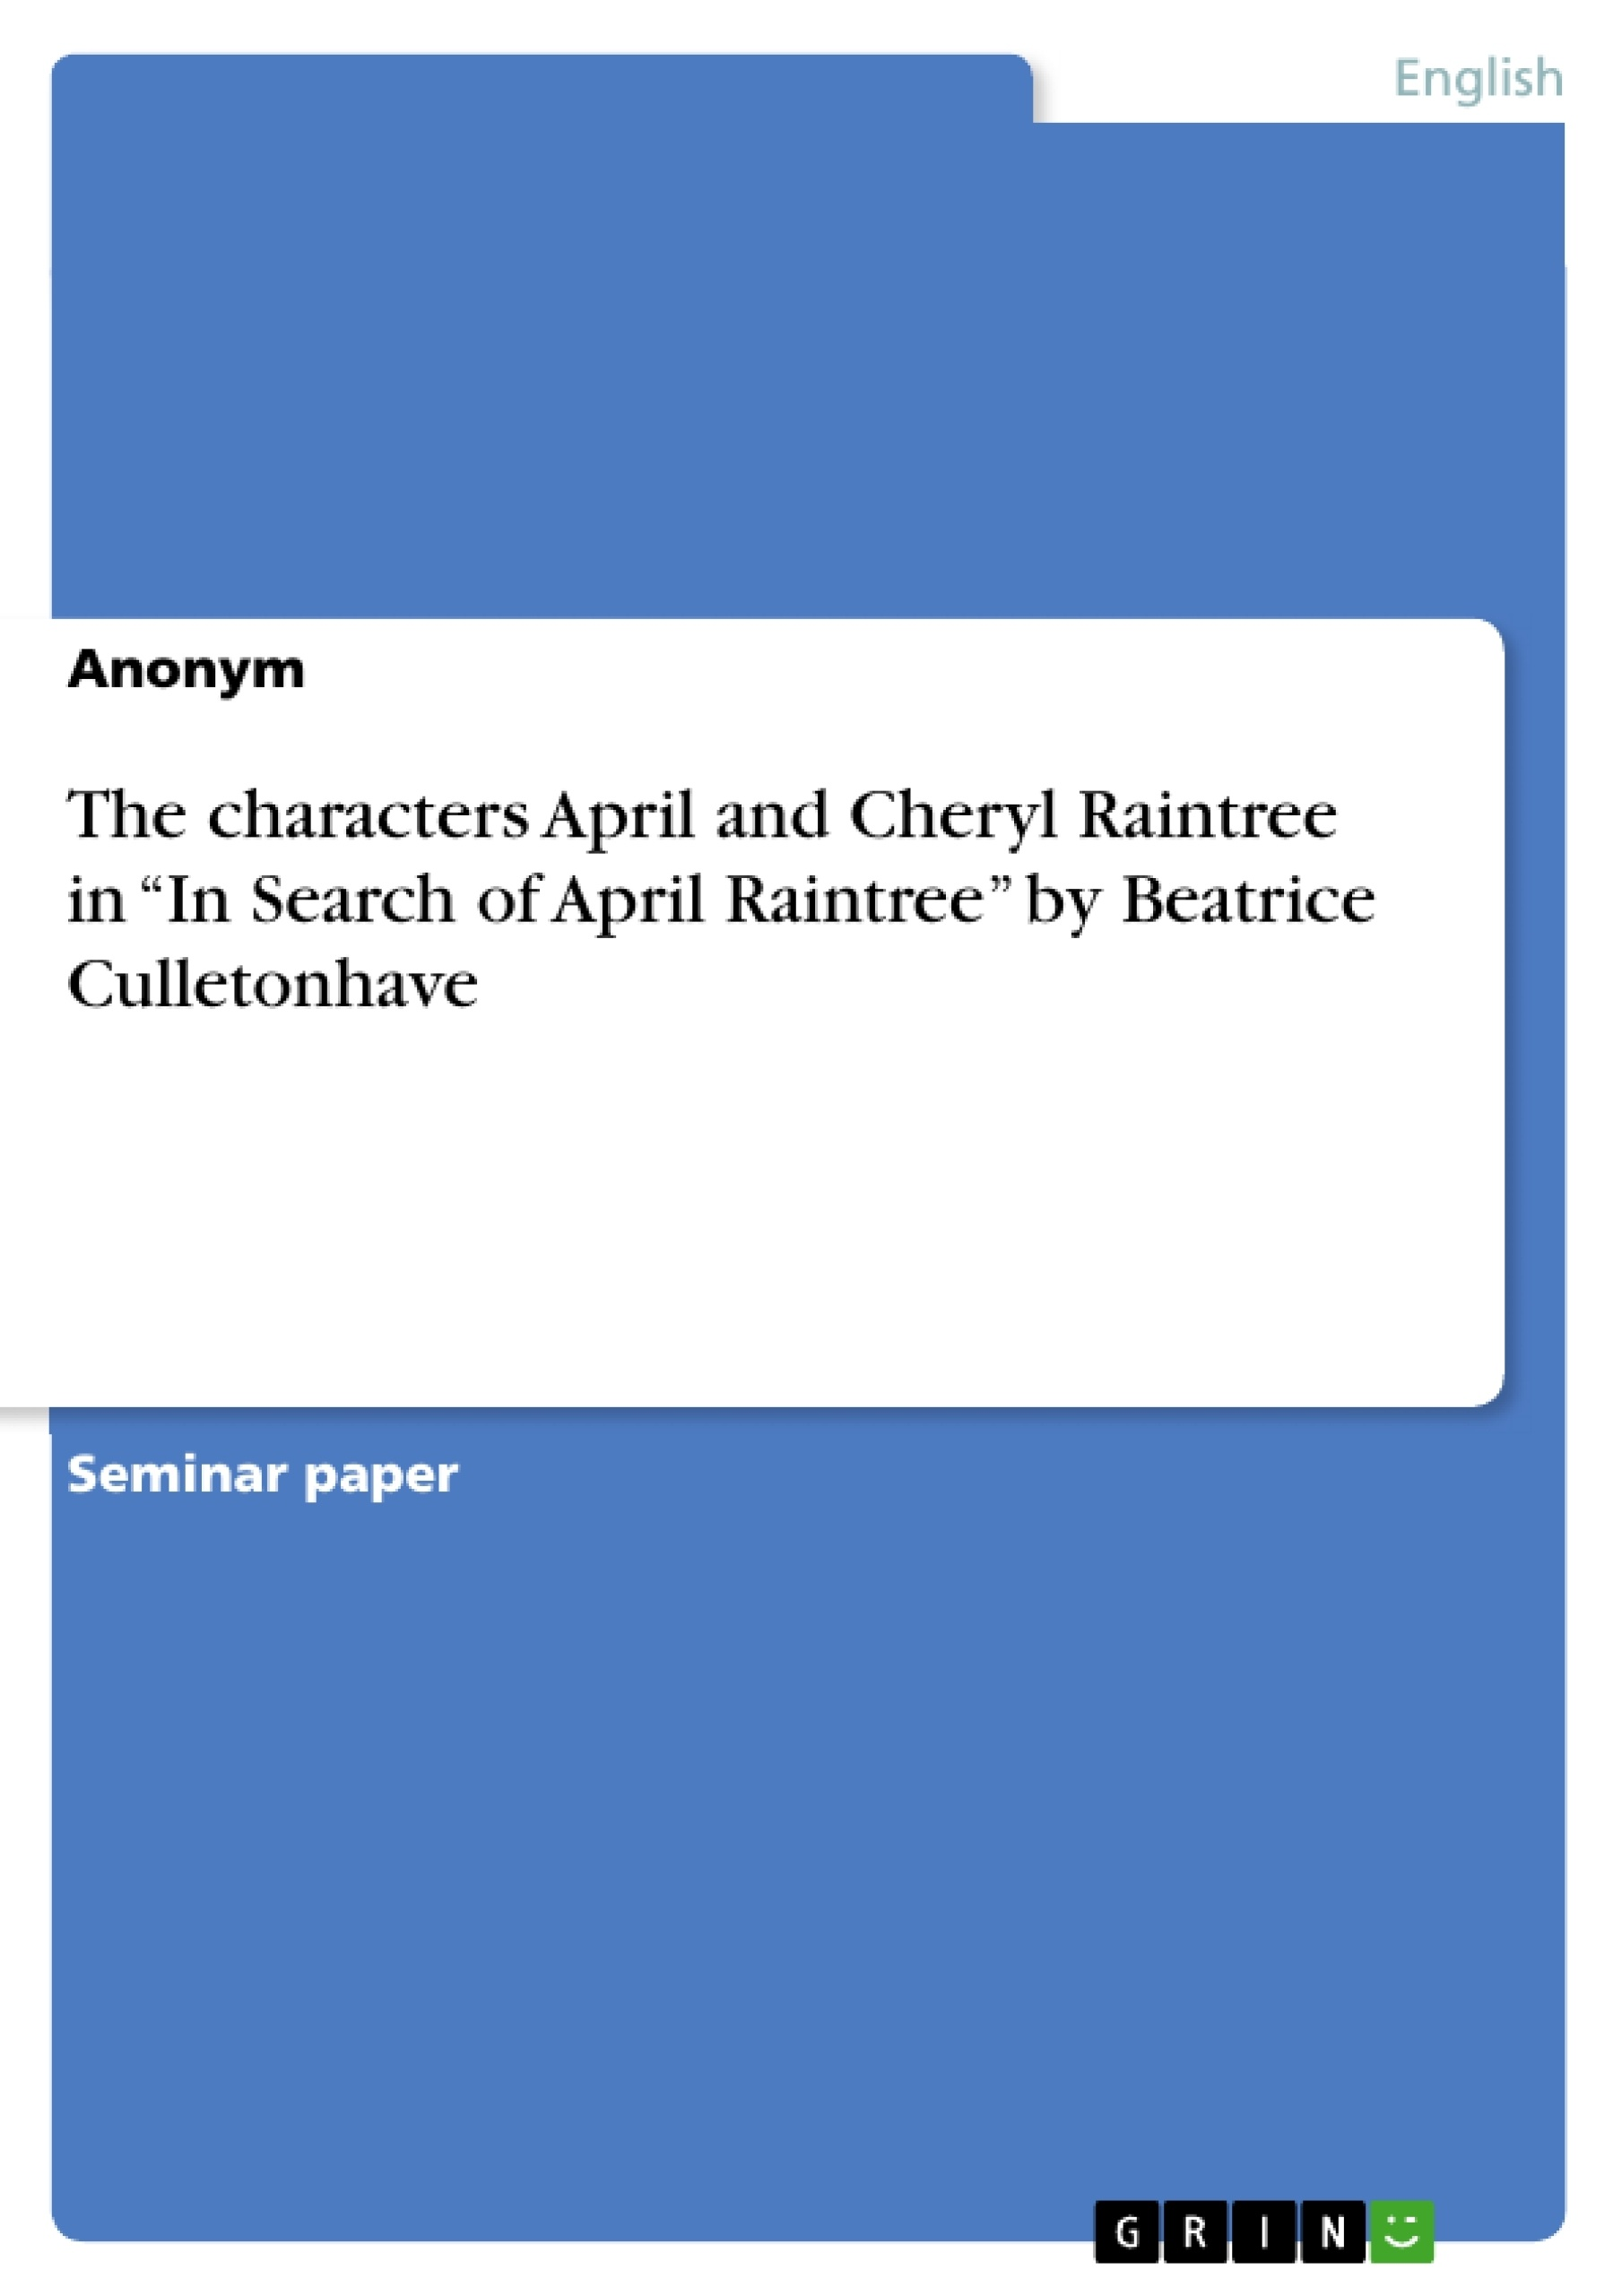 The Characters April And Cheryl Raintree In In Search Of April  Upload Your Own Papers Earn Money And Win An Iphone X Essay For English Language also Business Essays Theme For English B Essay